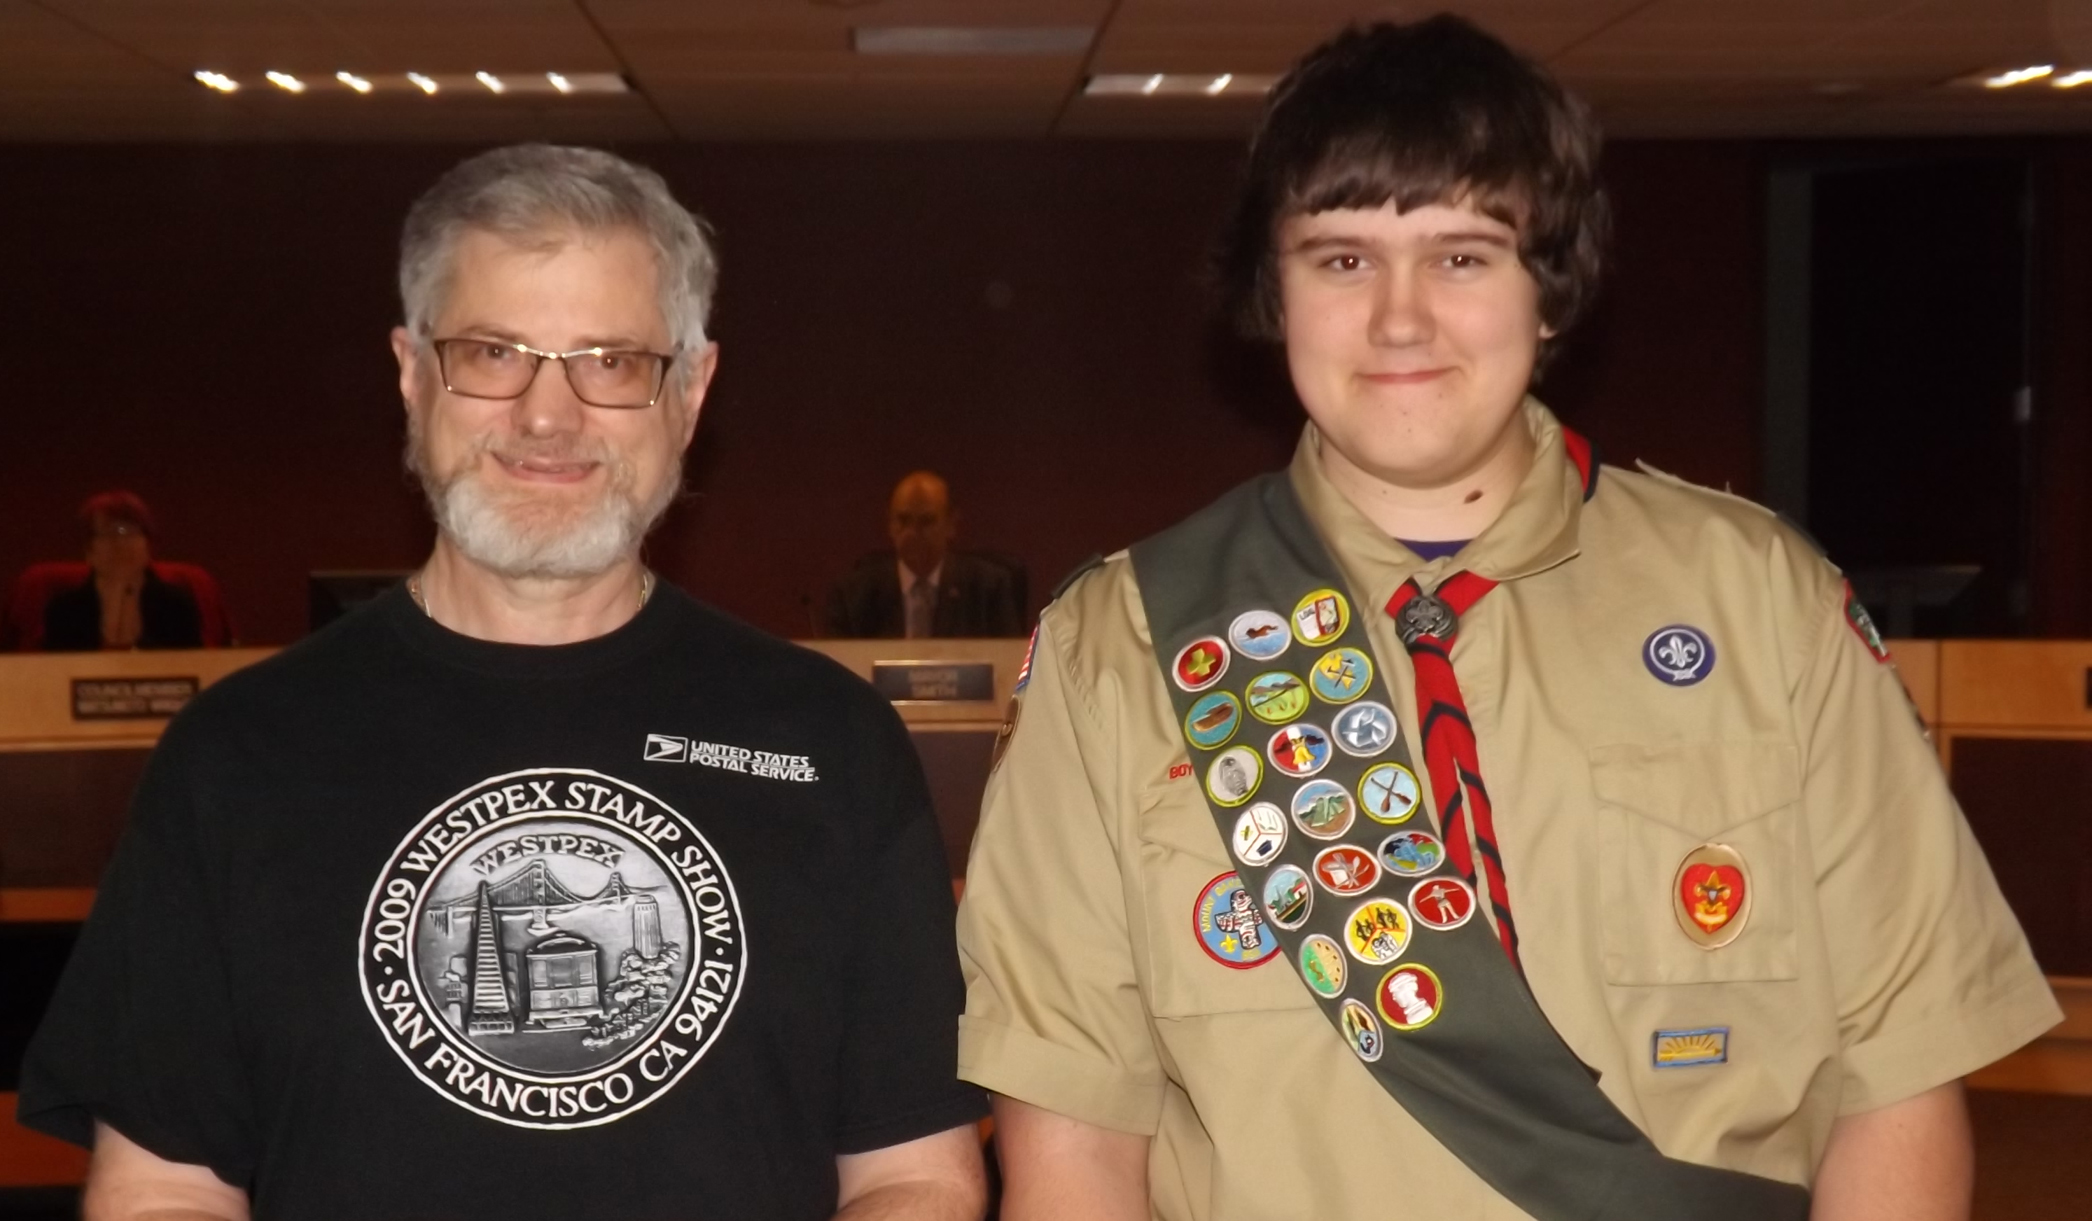 Eagle Scout Candidate Gavin Clark_1 Cropped Resized.jpg